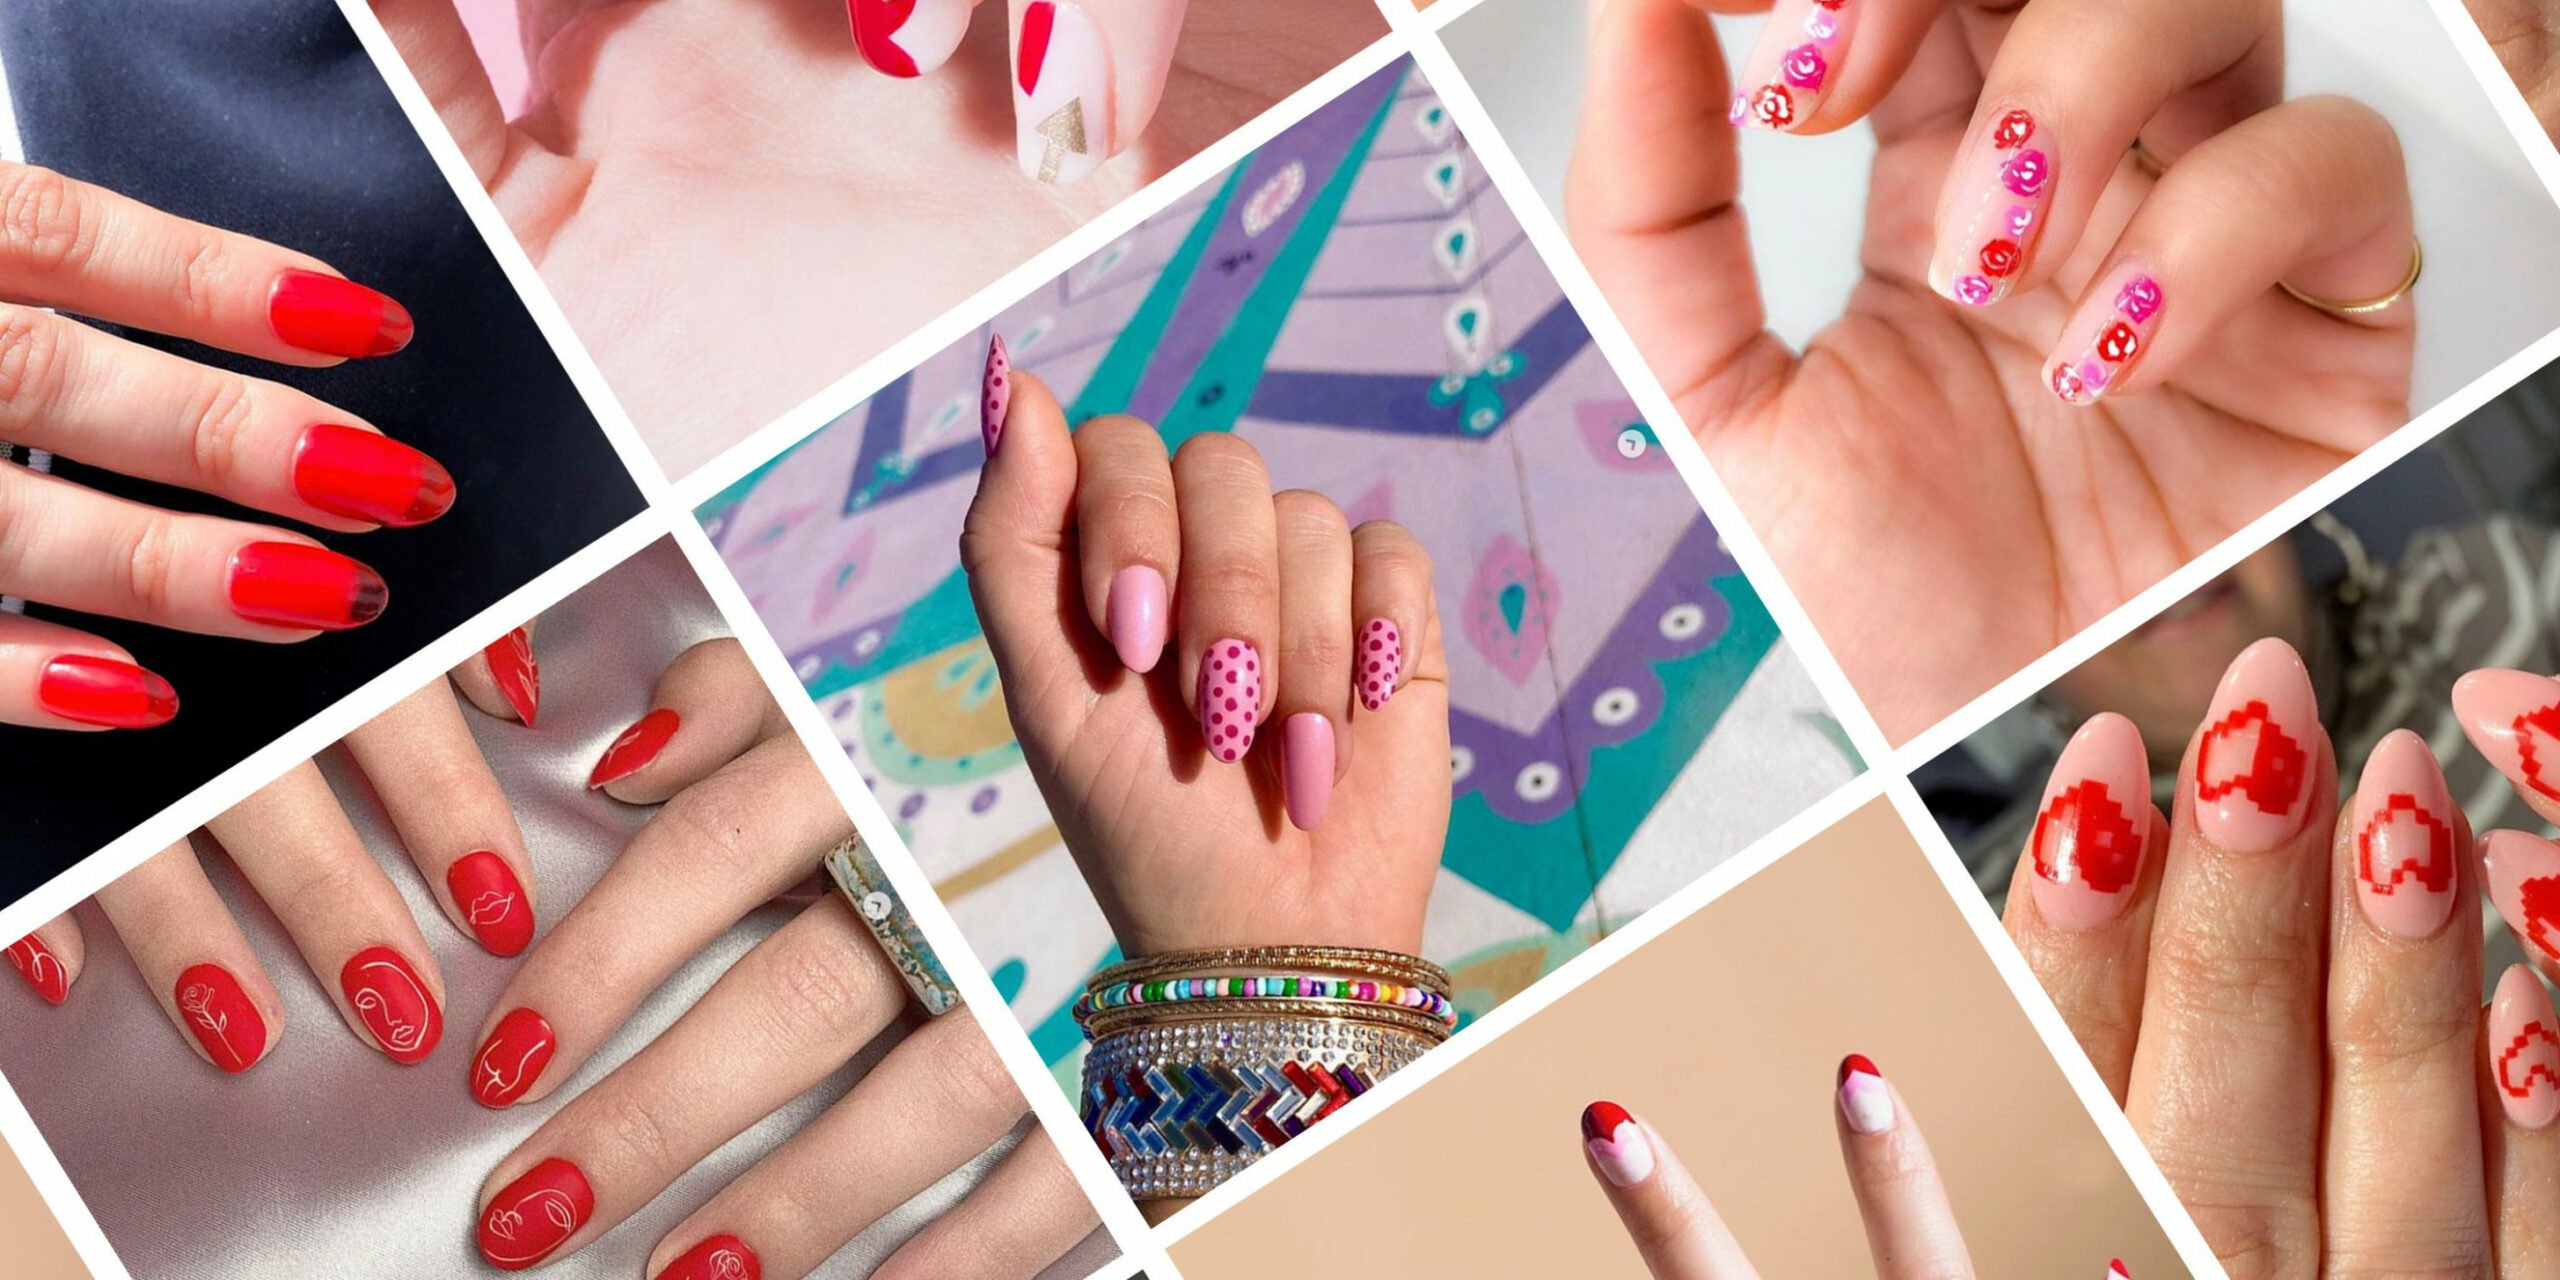 Valentine's Day Nail Art 8 - Cute Manicure Ideas for V-Day